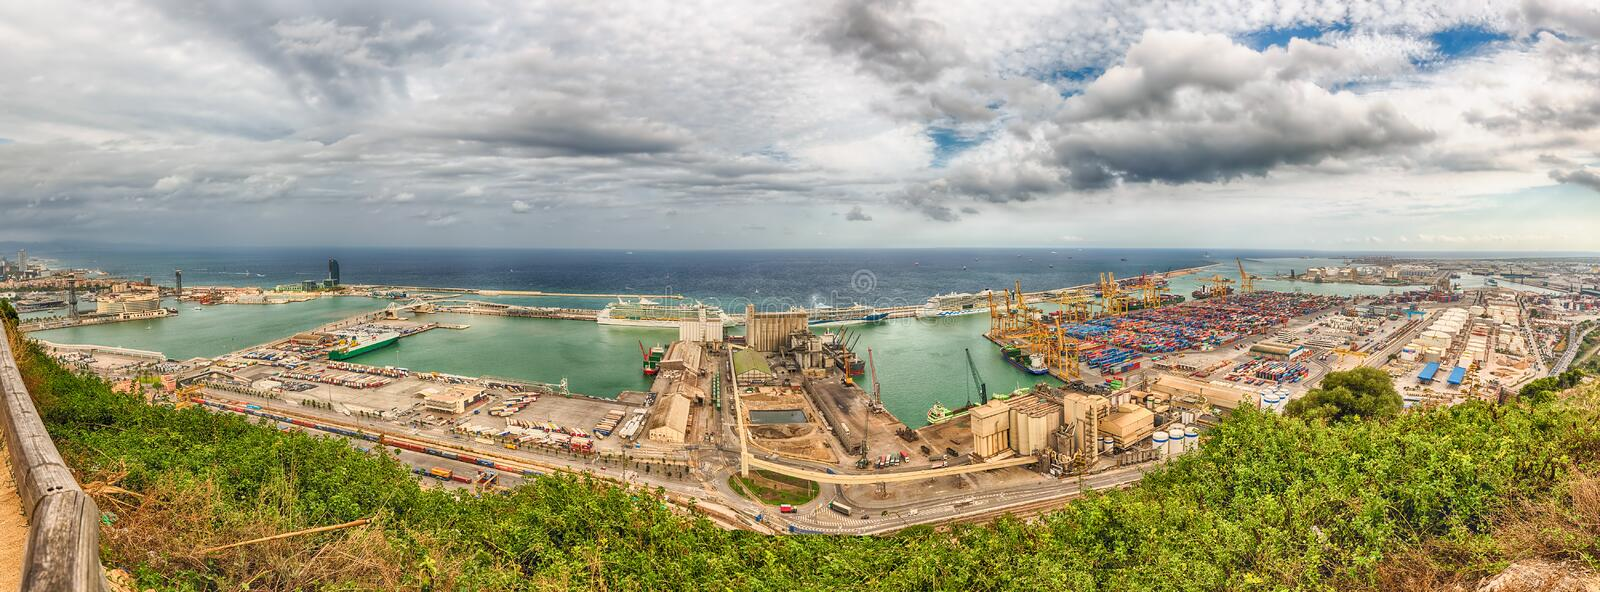 Panoramic aerial view over the Port of Barcelona, Catalonia, Spa stock photo